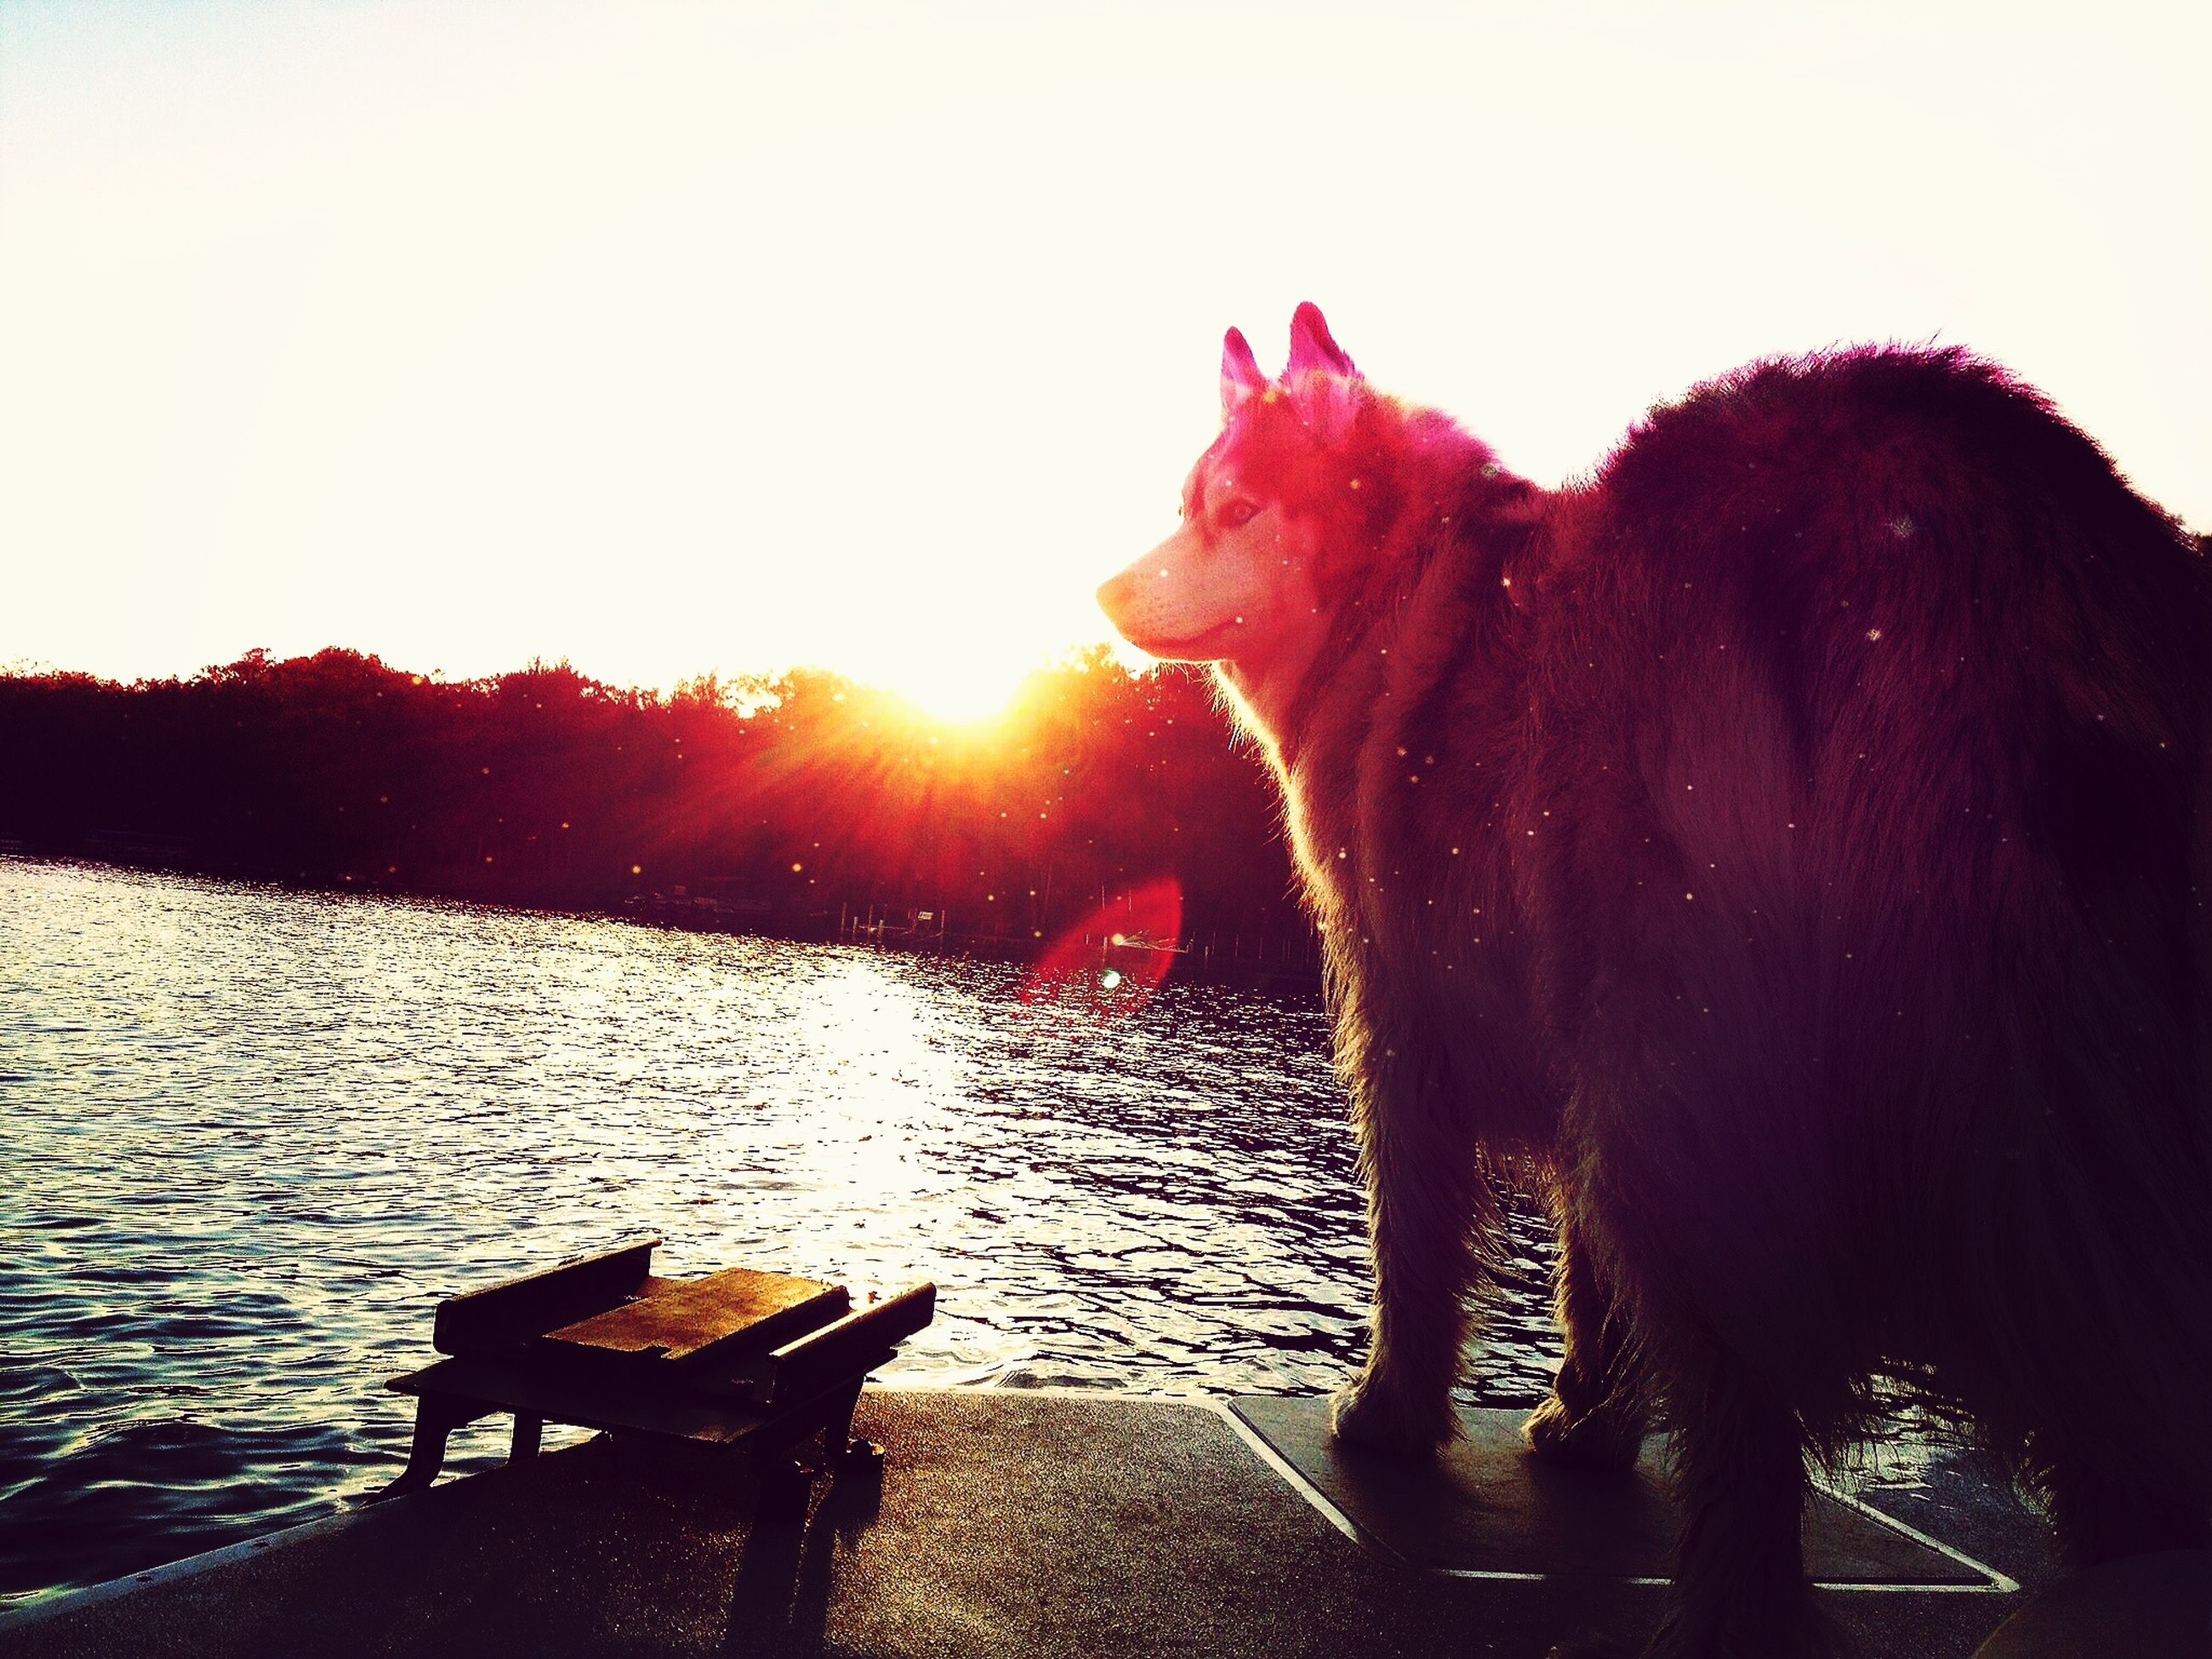 water, clear sky, sunlight, sun, domestic animals, sunset, animal themes, nature, one animal, red, lens flare, tranquility, mammal, outdoors, sunbeam, tranquil scene, wood - material, sky, beauty in nature, no people